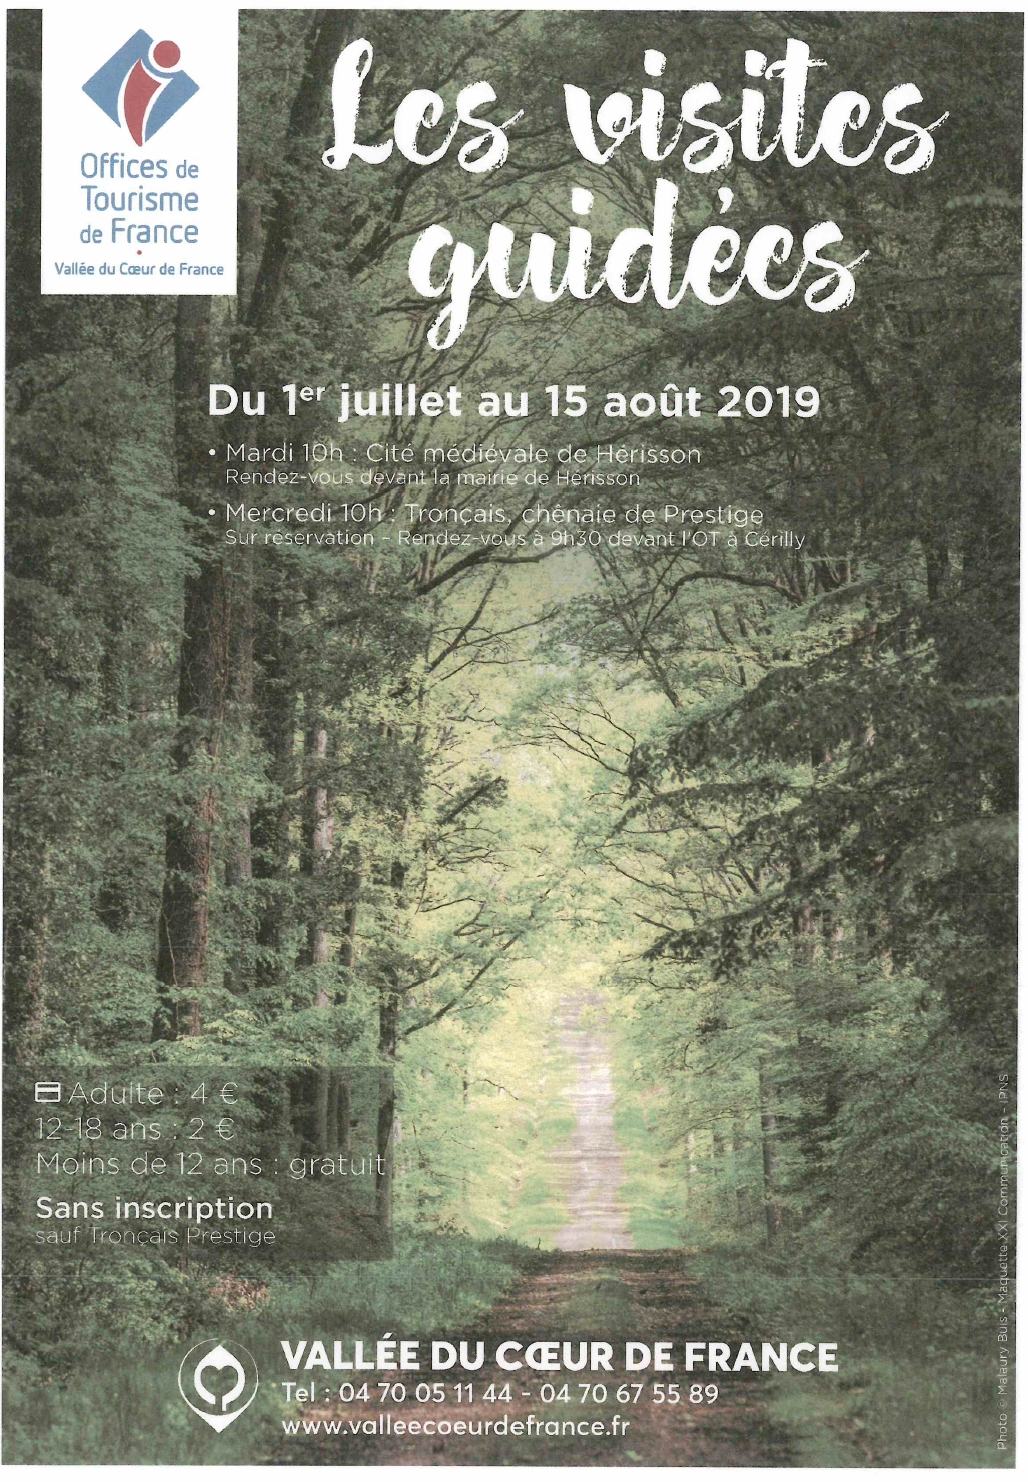 LES VISITES GUIDEES